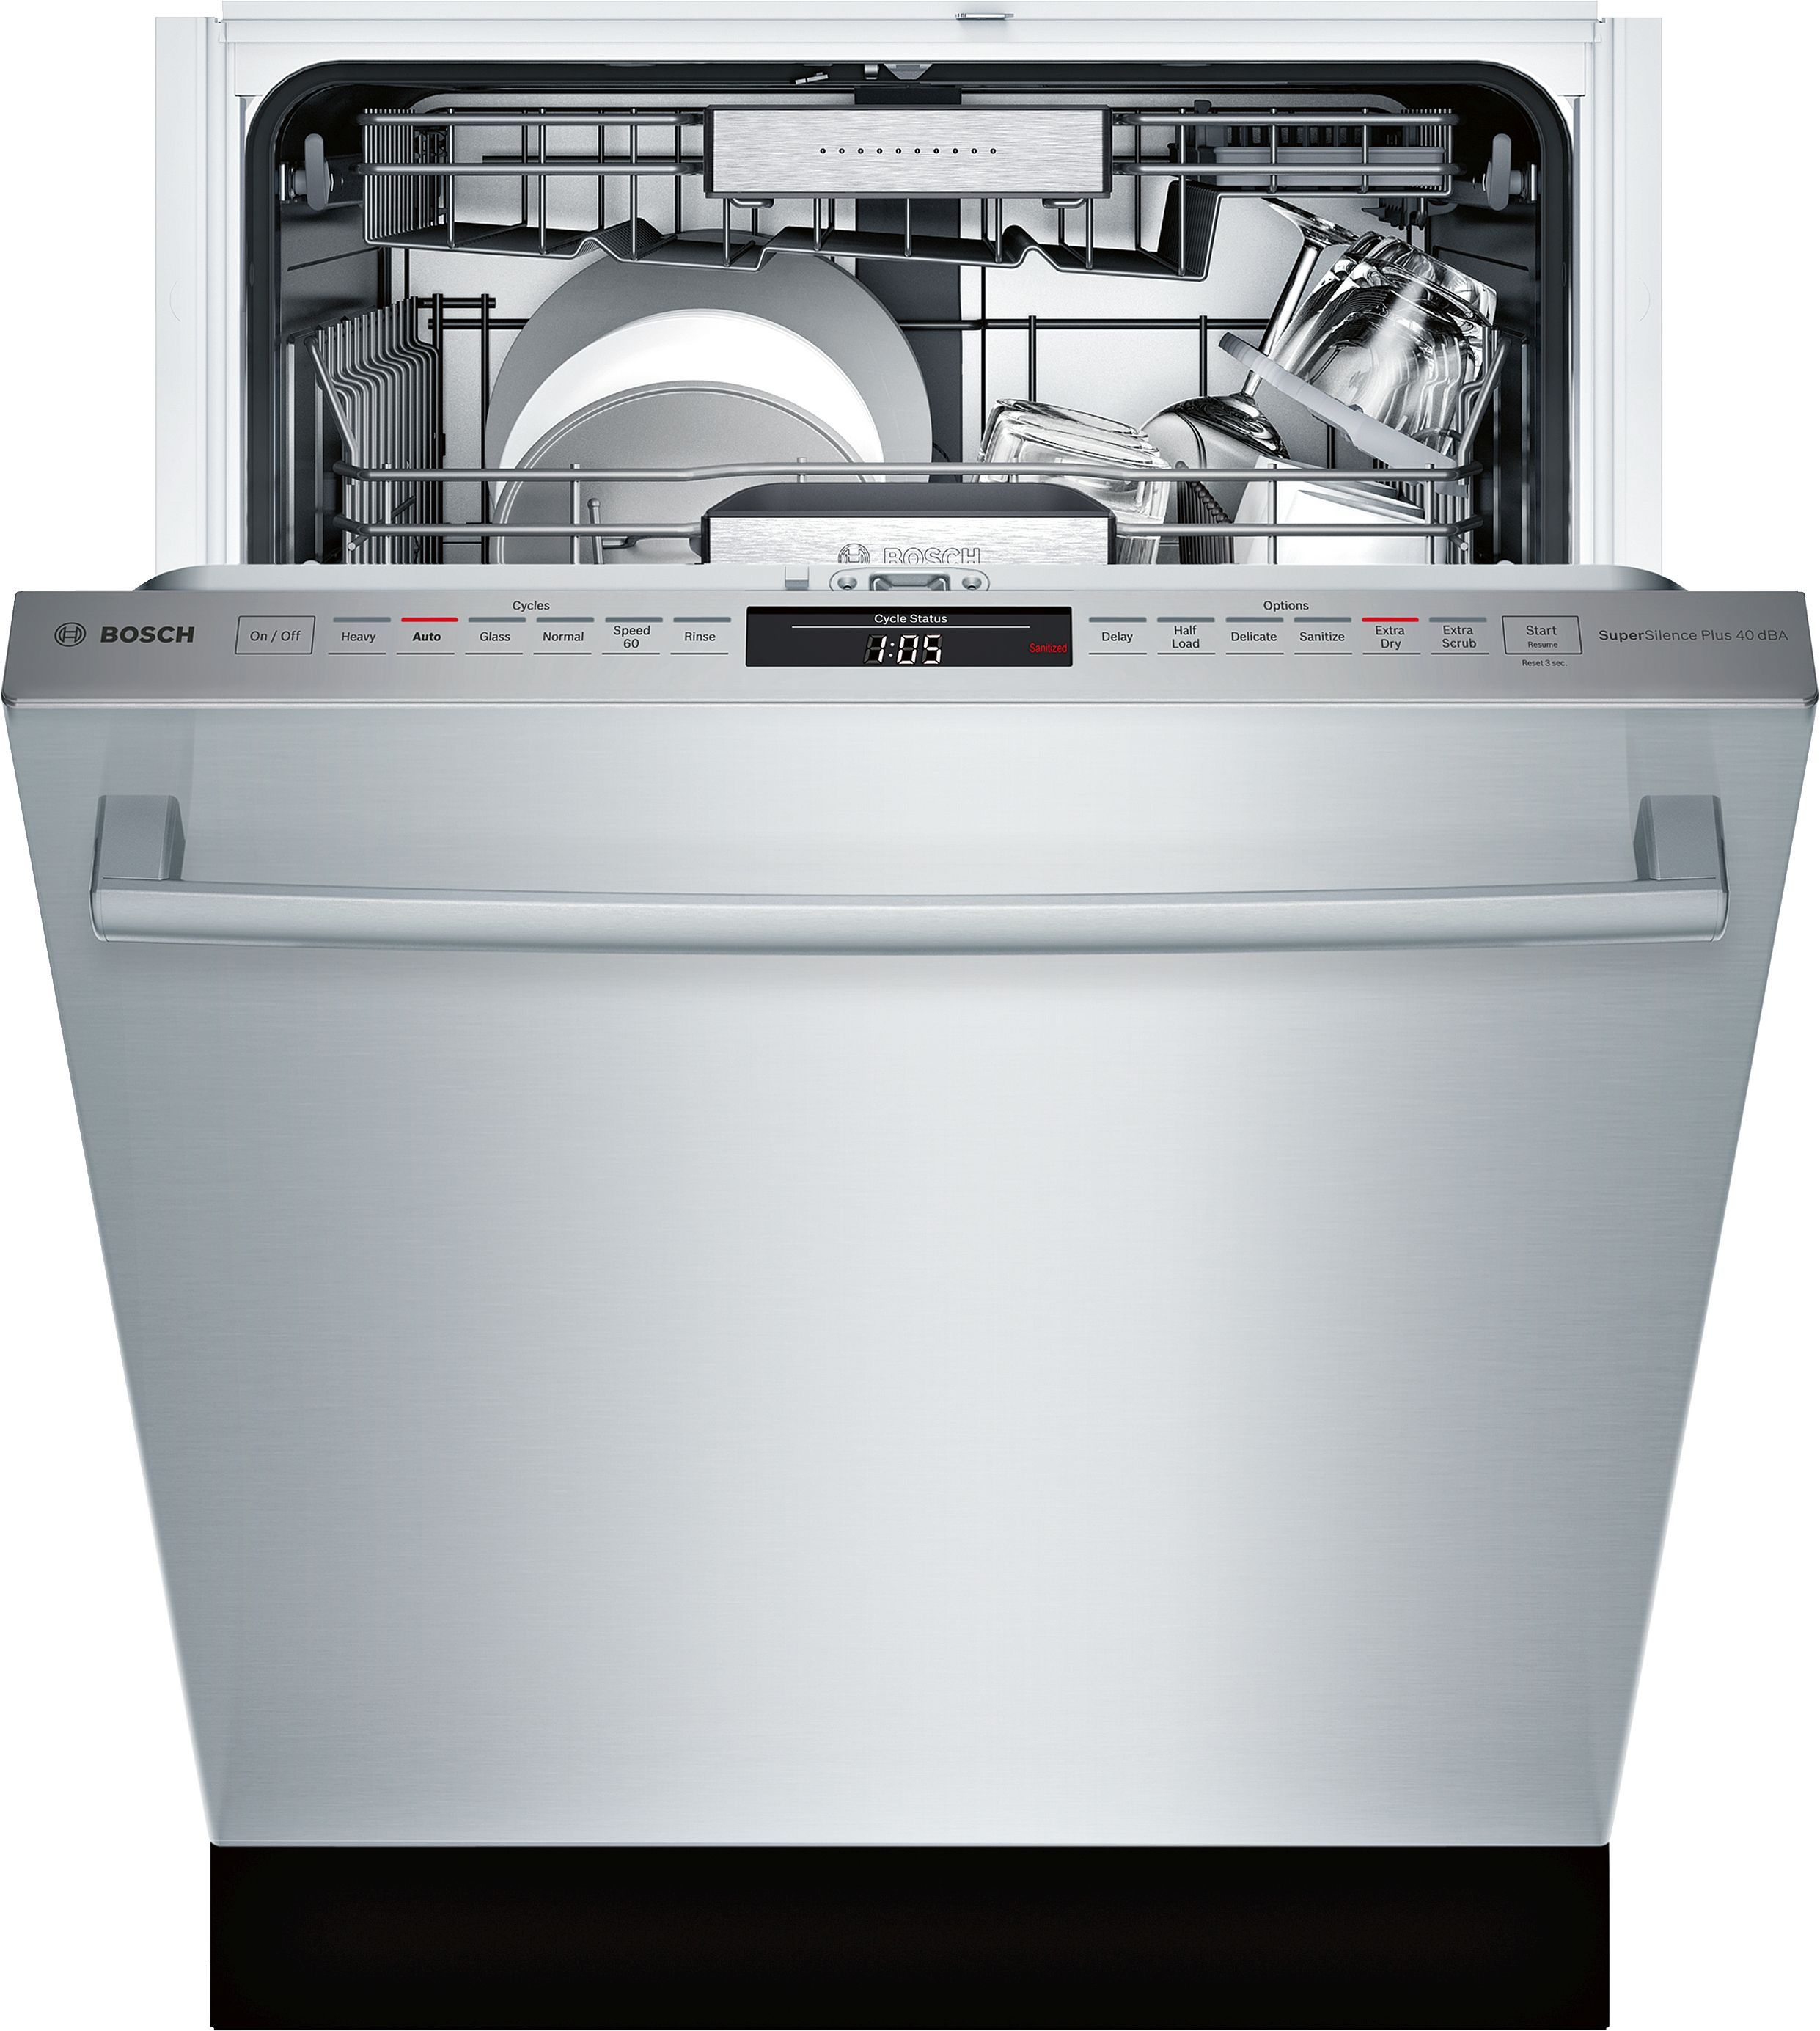 26++ Where are bosch dishwashers made ideas